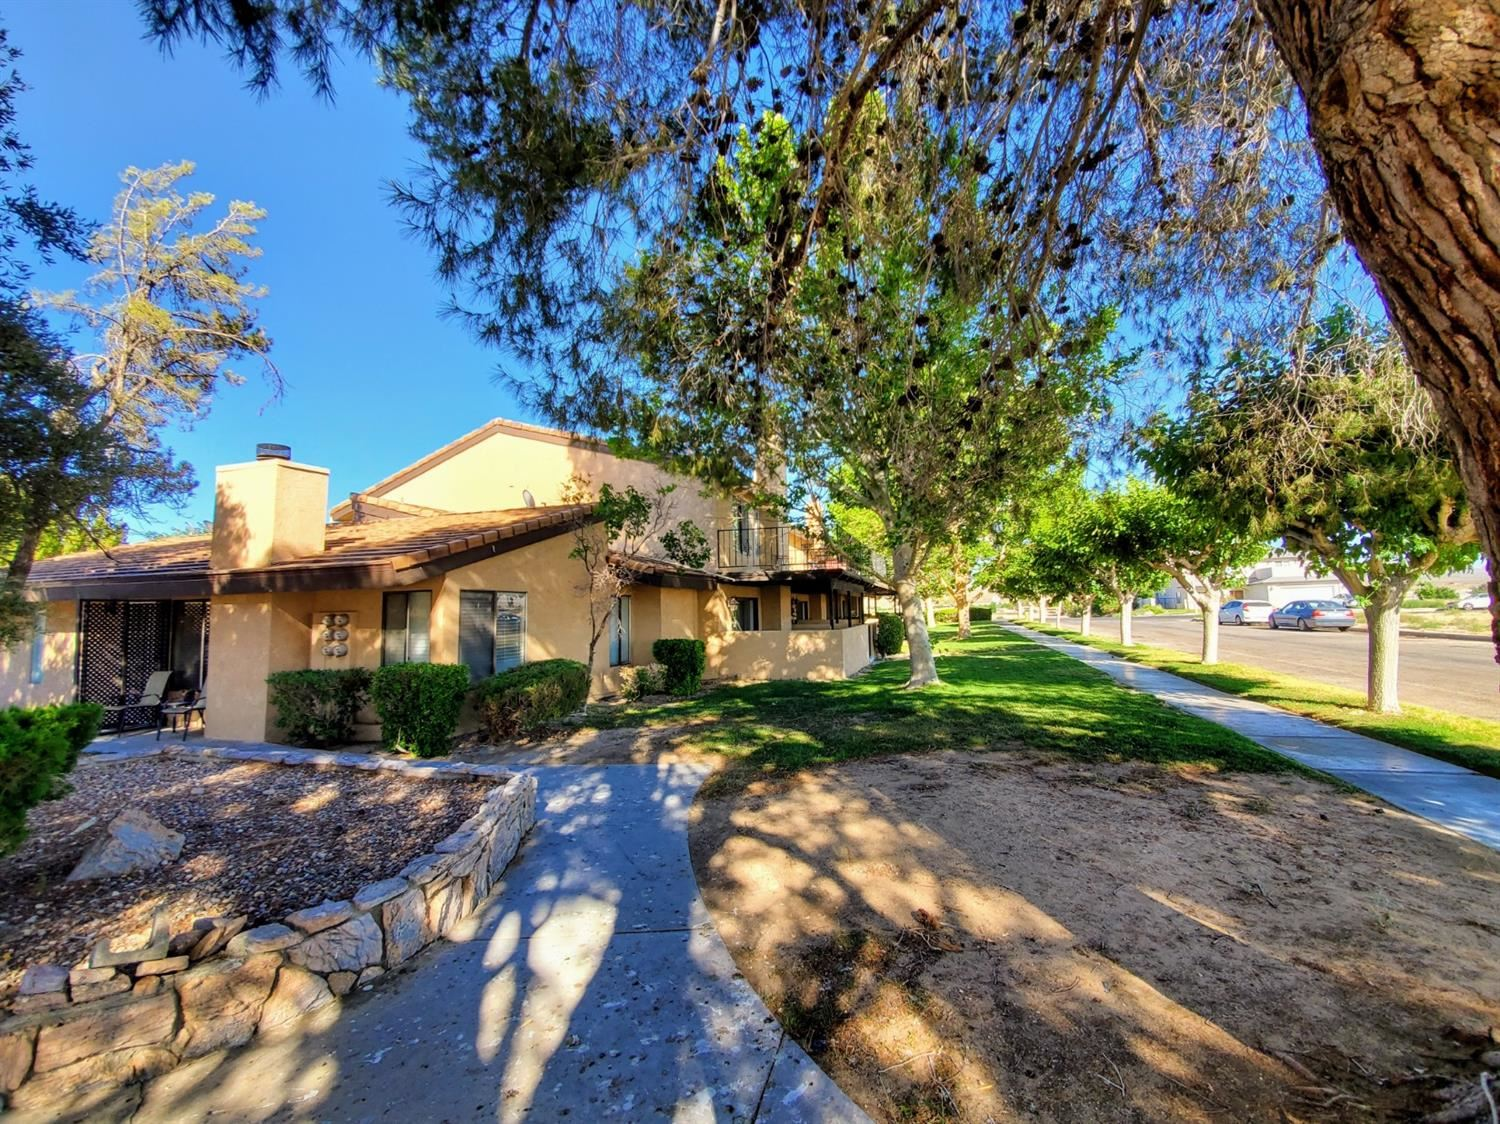 14736 Chaparral #6 Lane, Helendale, CA 92342 - #: 525875